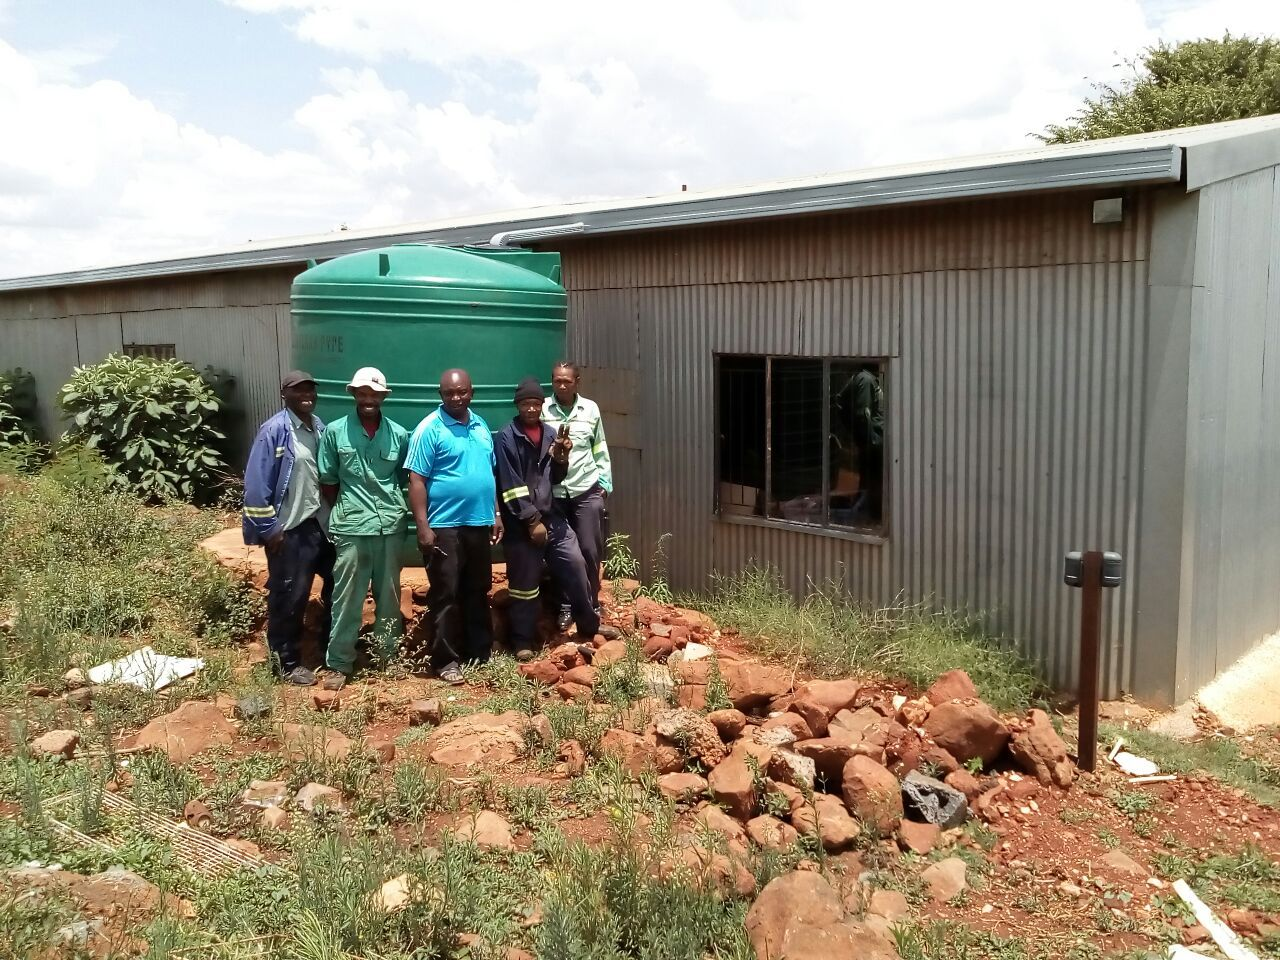 5 000 litre water tank's latest development